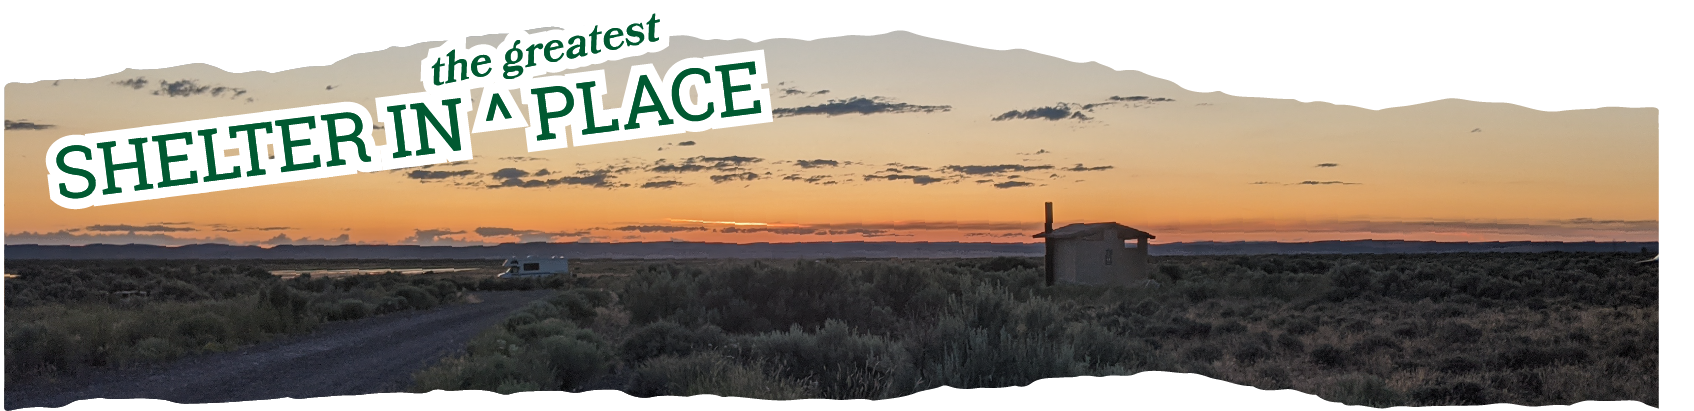 Title Text: Shelter in the Greatest Place laid over a photo of the sun setting over a desert campground with a vault toilet outhouse in the foreground.